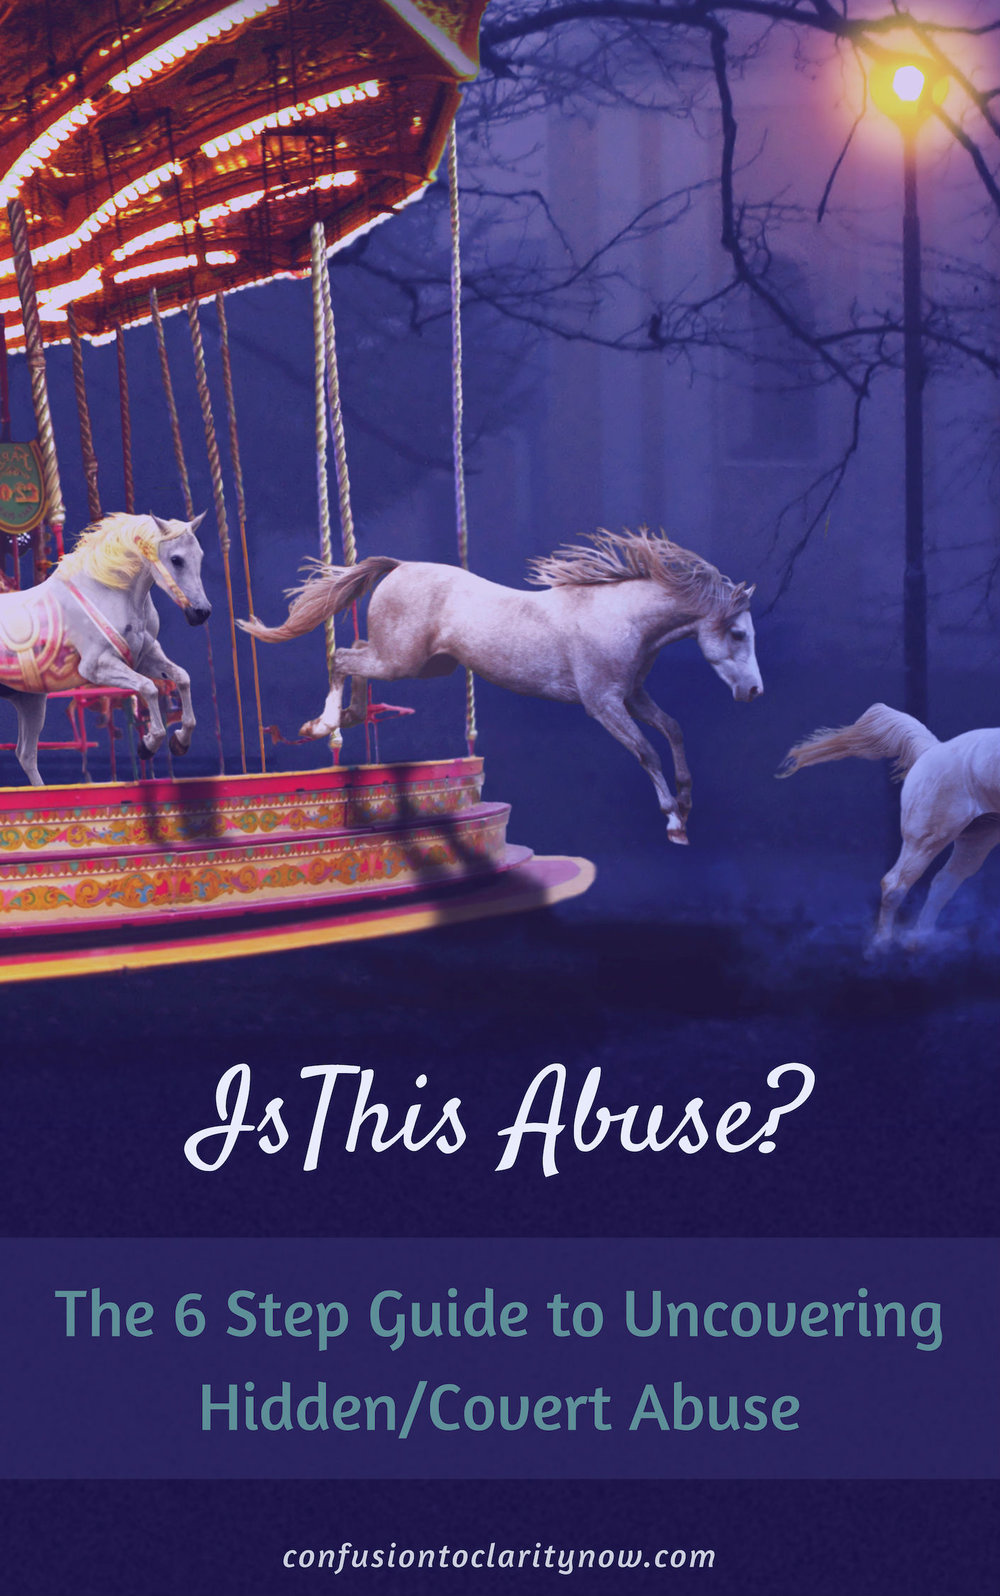 Covert abusers use mind games, gaslighting, blame-shifting and many other hidden tactics to keep you on the merry -go-round of confusion.